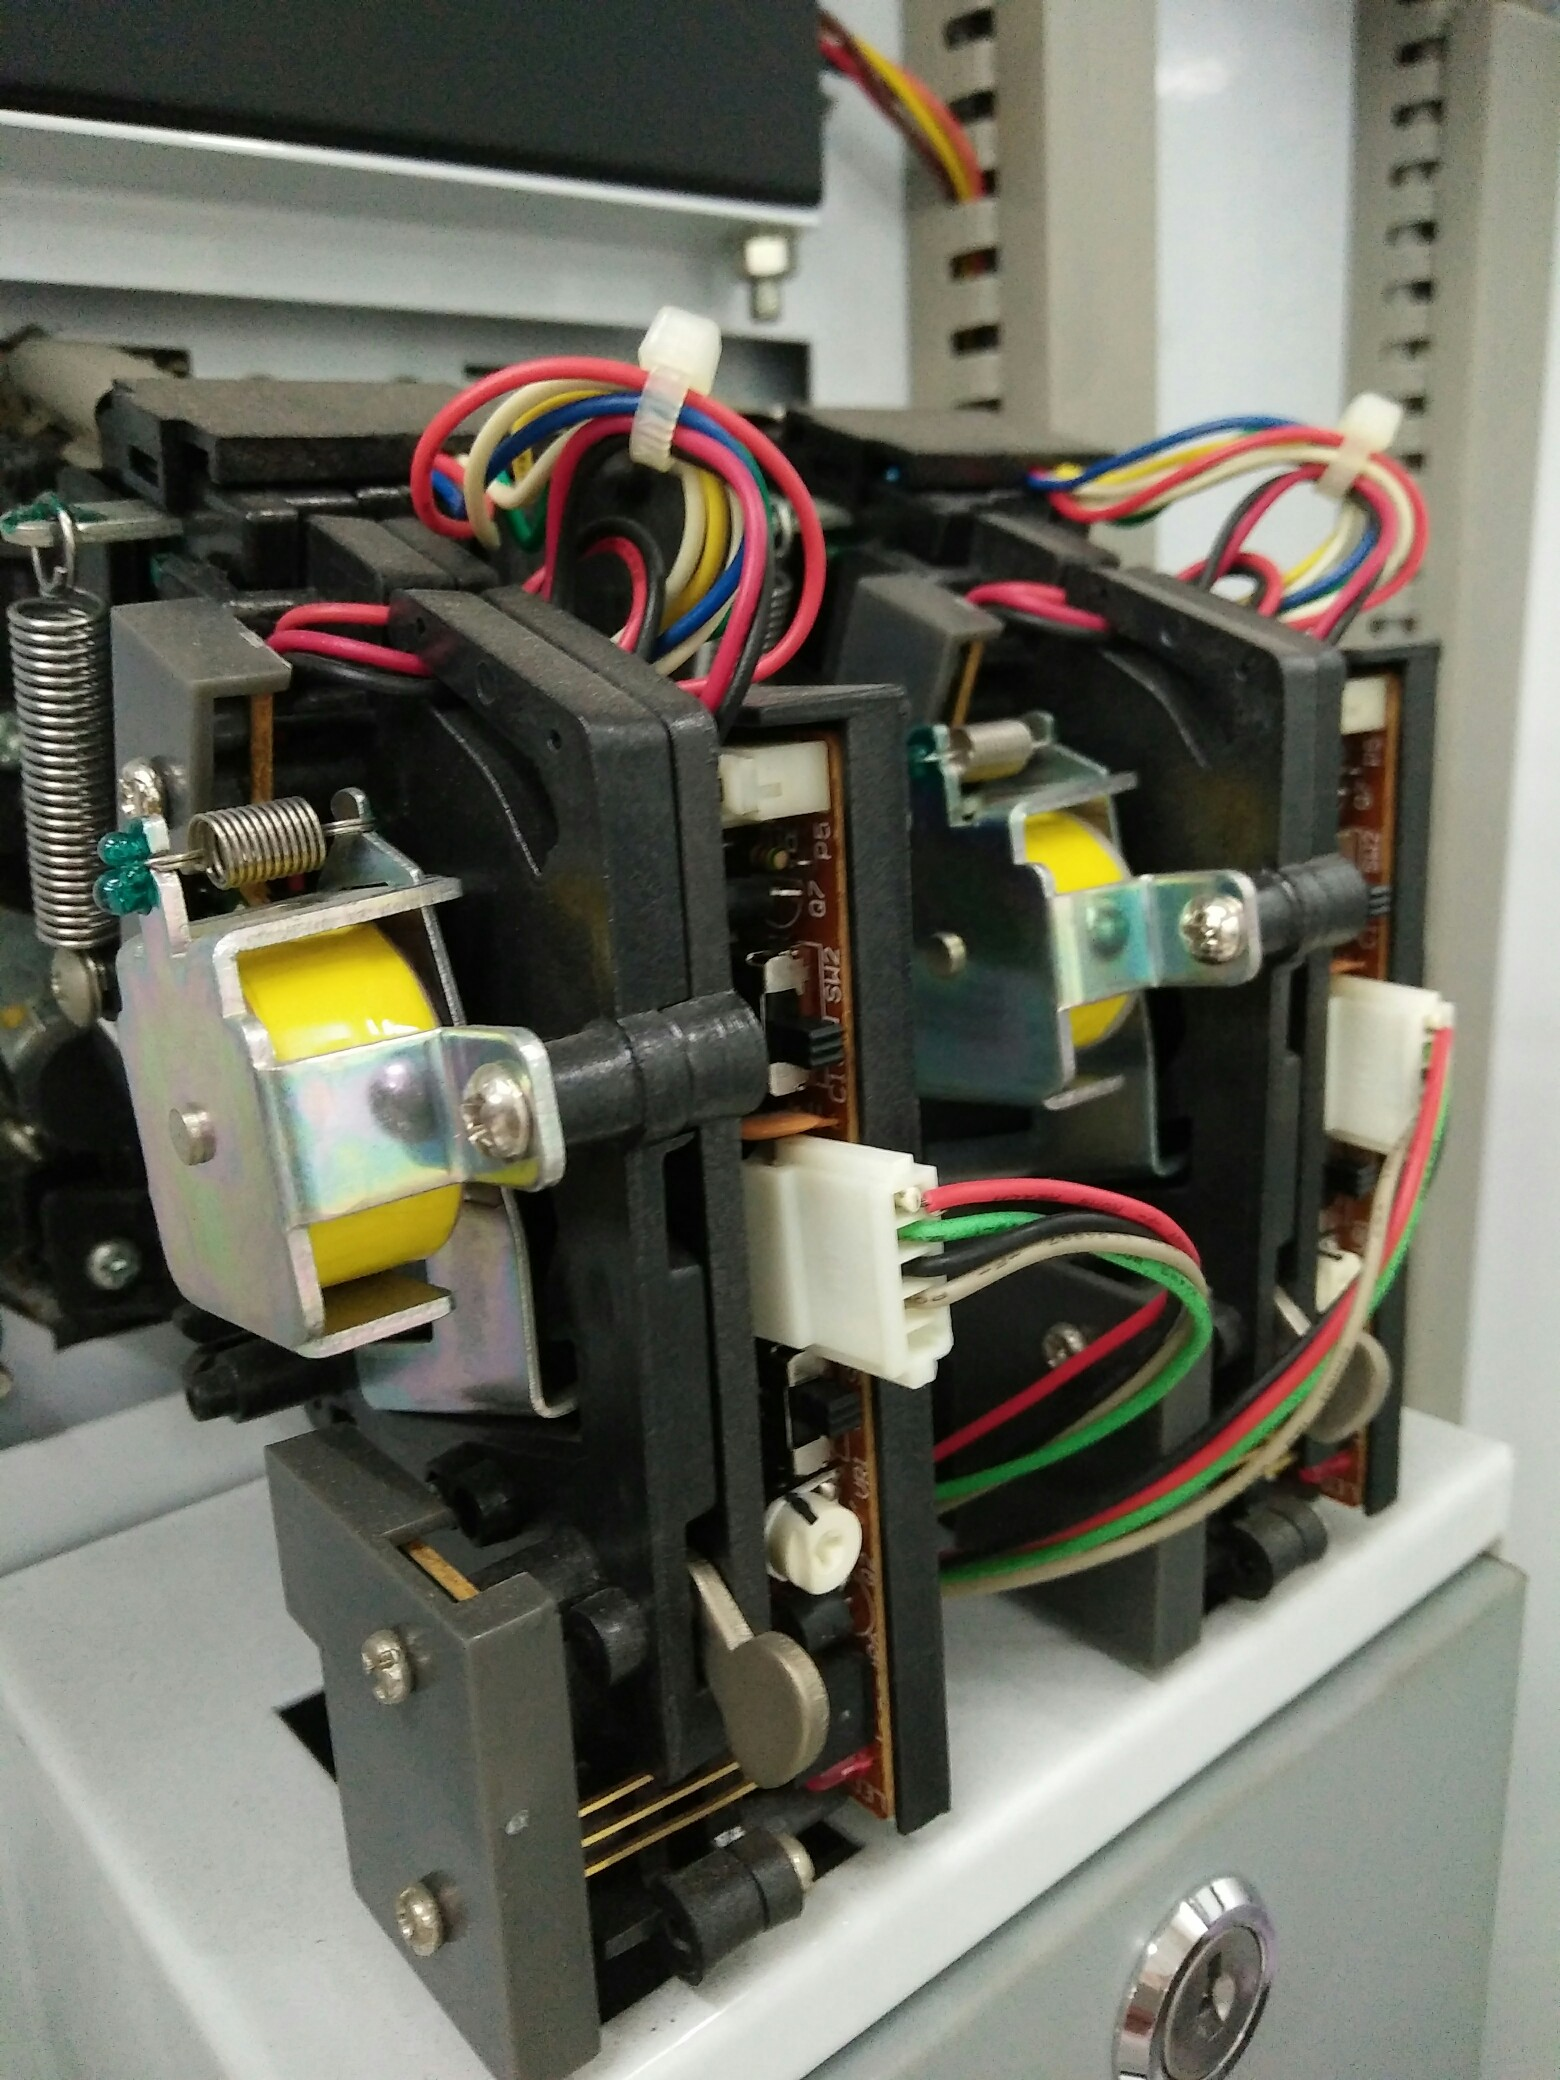 wire harness for vending machine